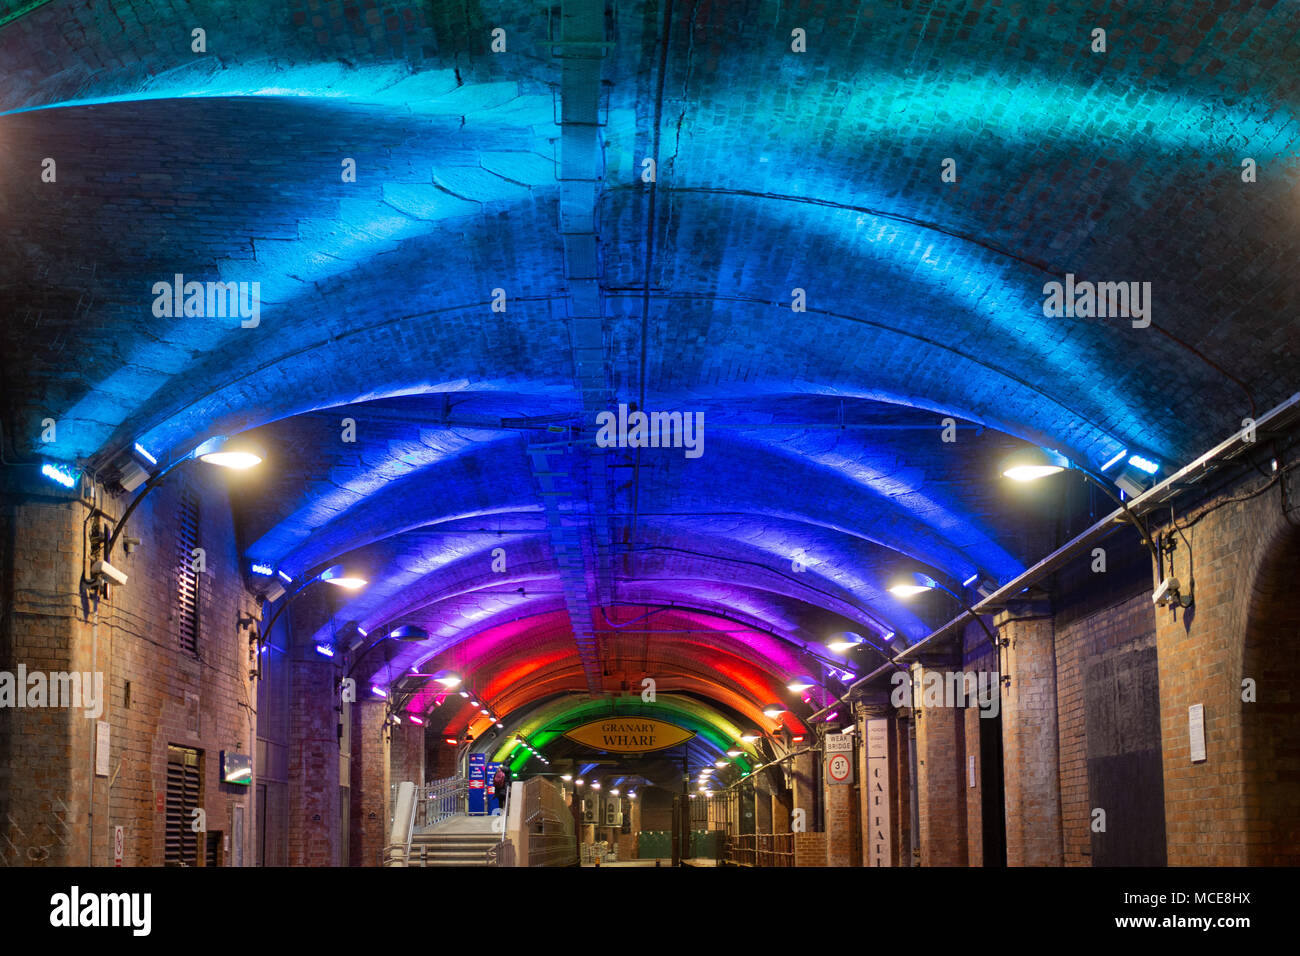 The tunnels under Leeds railway station that are now part of Granary Wharf a new entertainment complex in the heart of Leeds. Stock Photo